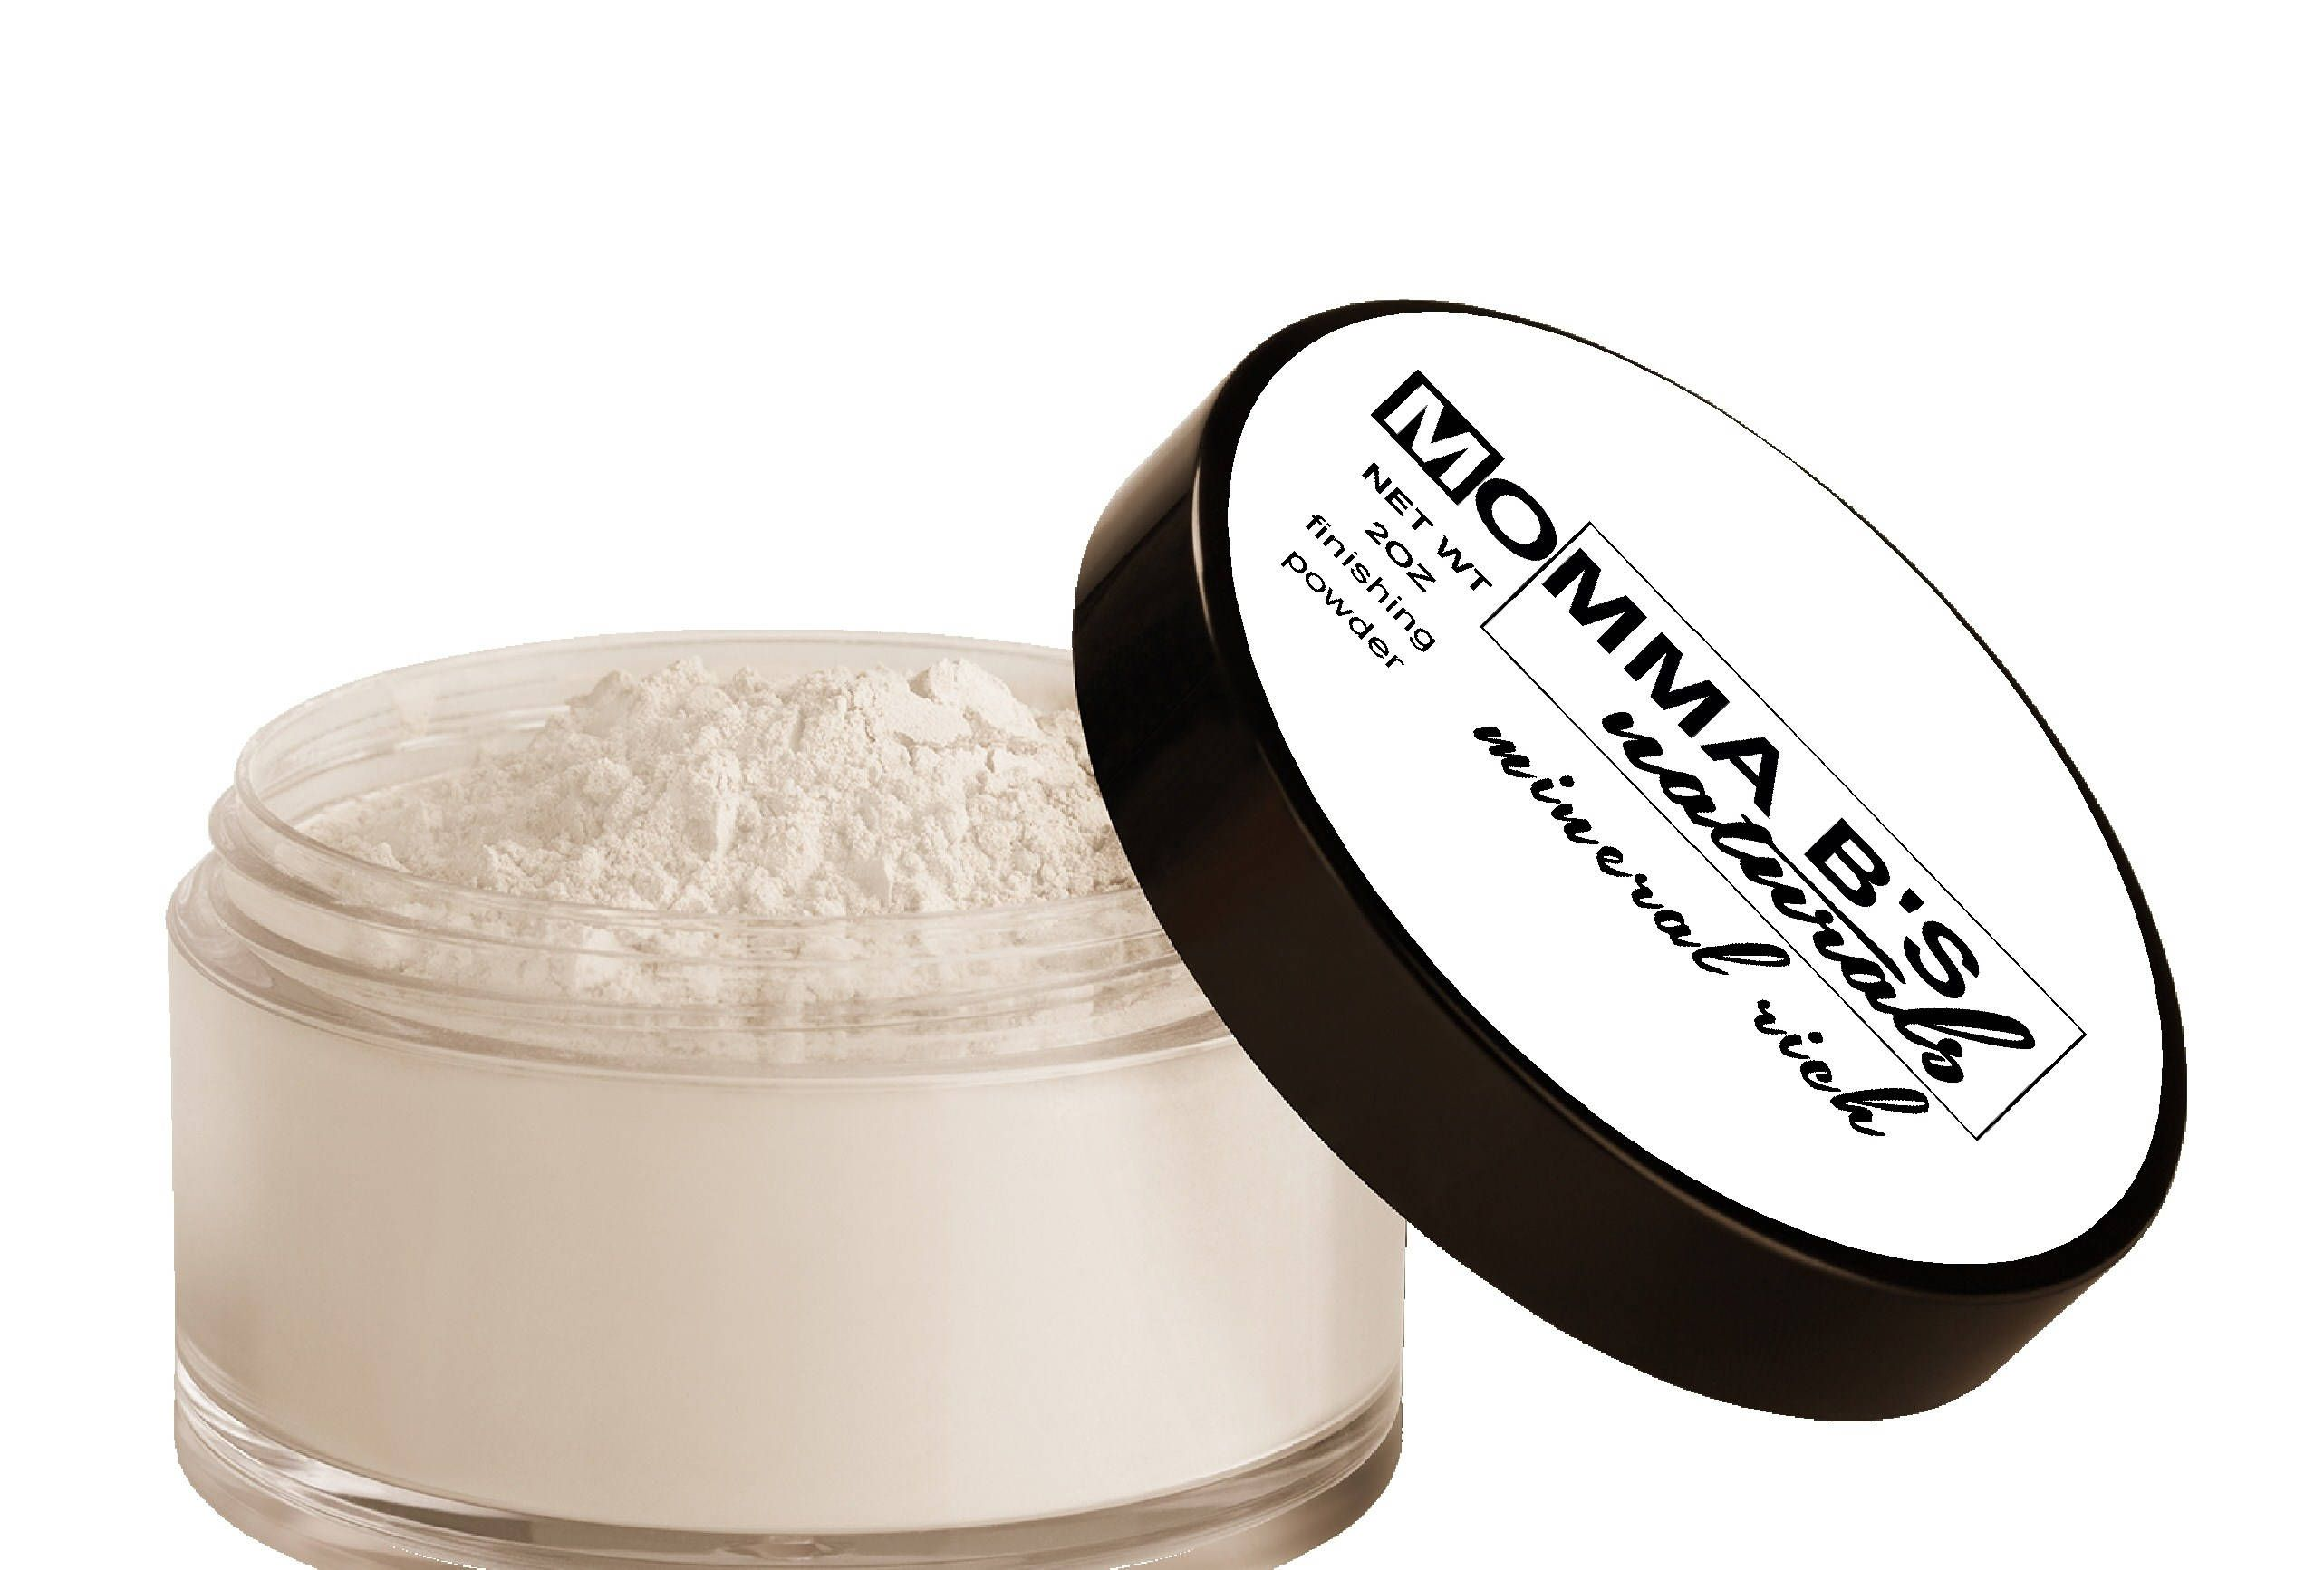 Sea Salt Setting Powder / Acne Healing Makeup / Matte